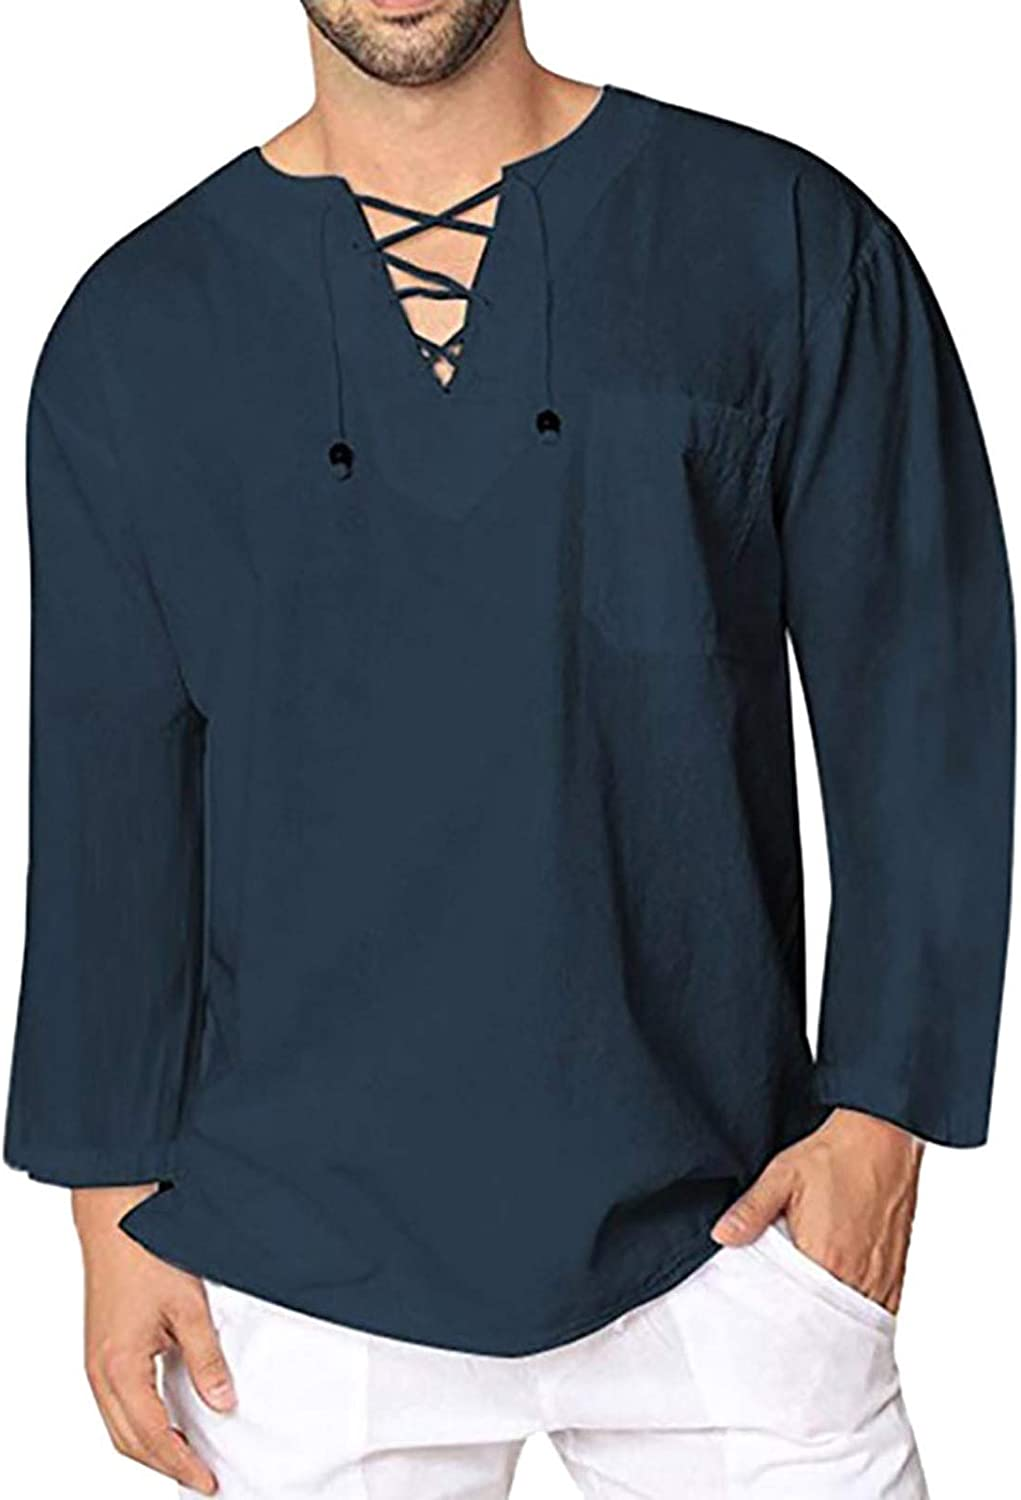 WOCACHI Lace-up Henley Shirts For Mens, Long Sleeve Drawstring Loose Fit Tee Shirt Casual Solid Tops with Pocket